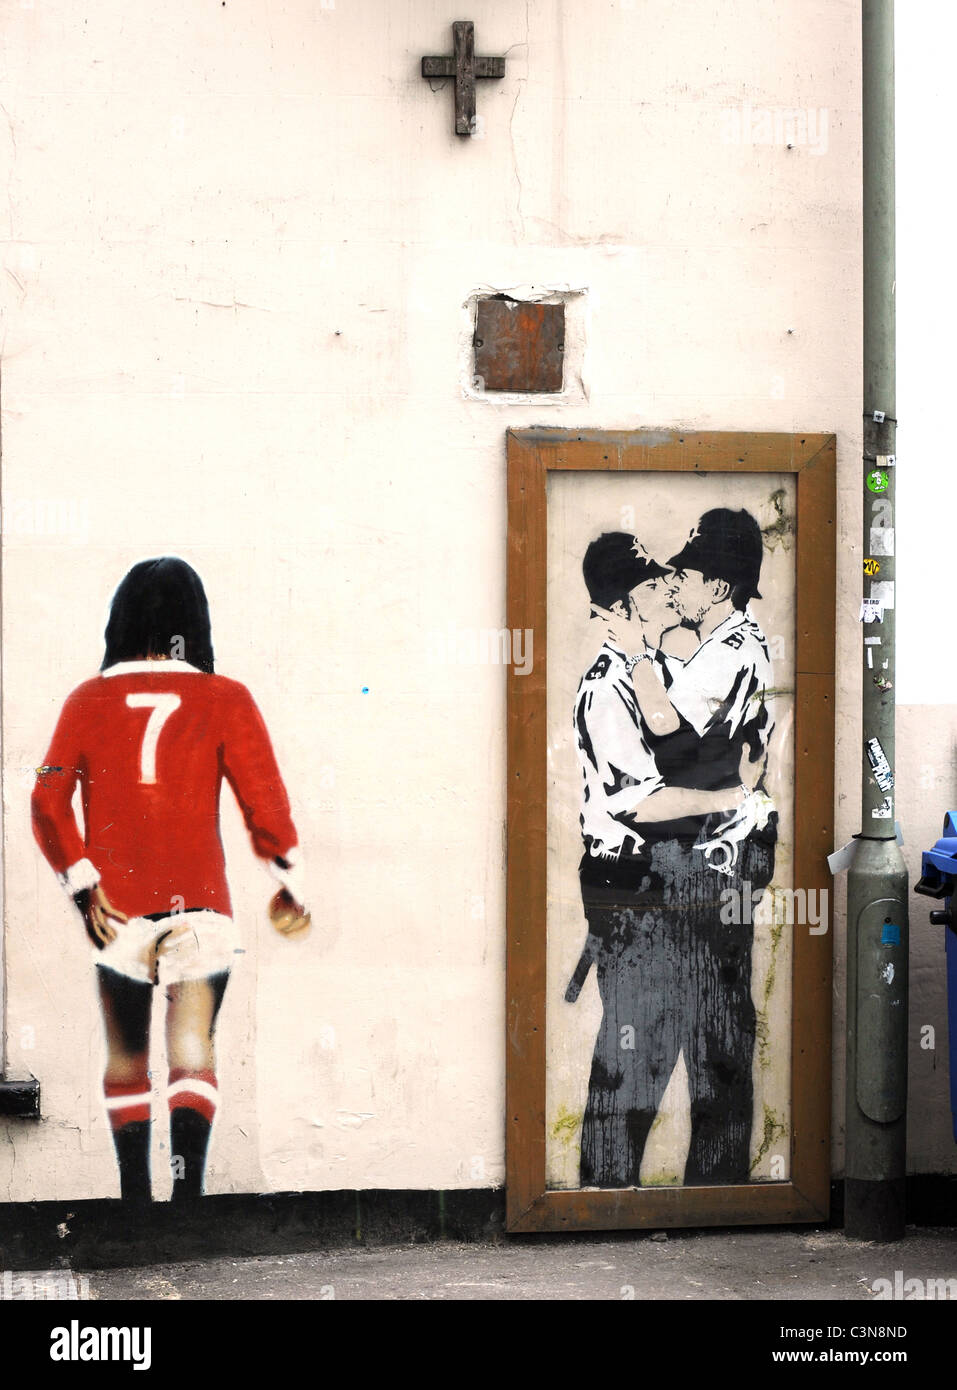 banksy graffiti on the wall of the prince albert pub in brighton banksy graffiti on the wall of the prince albert pub in brighton the kissing policemen